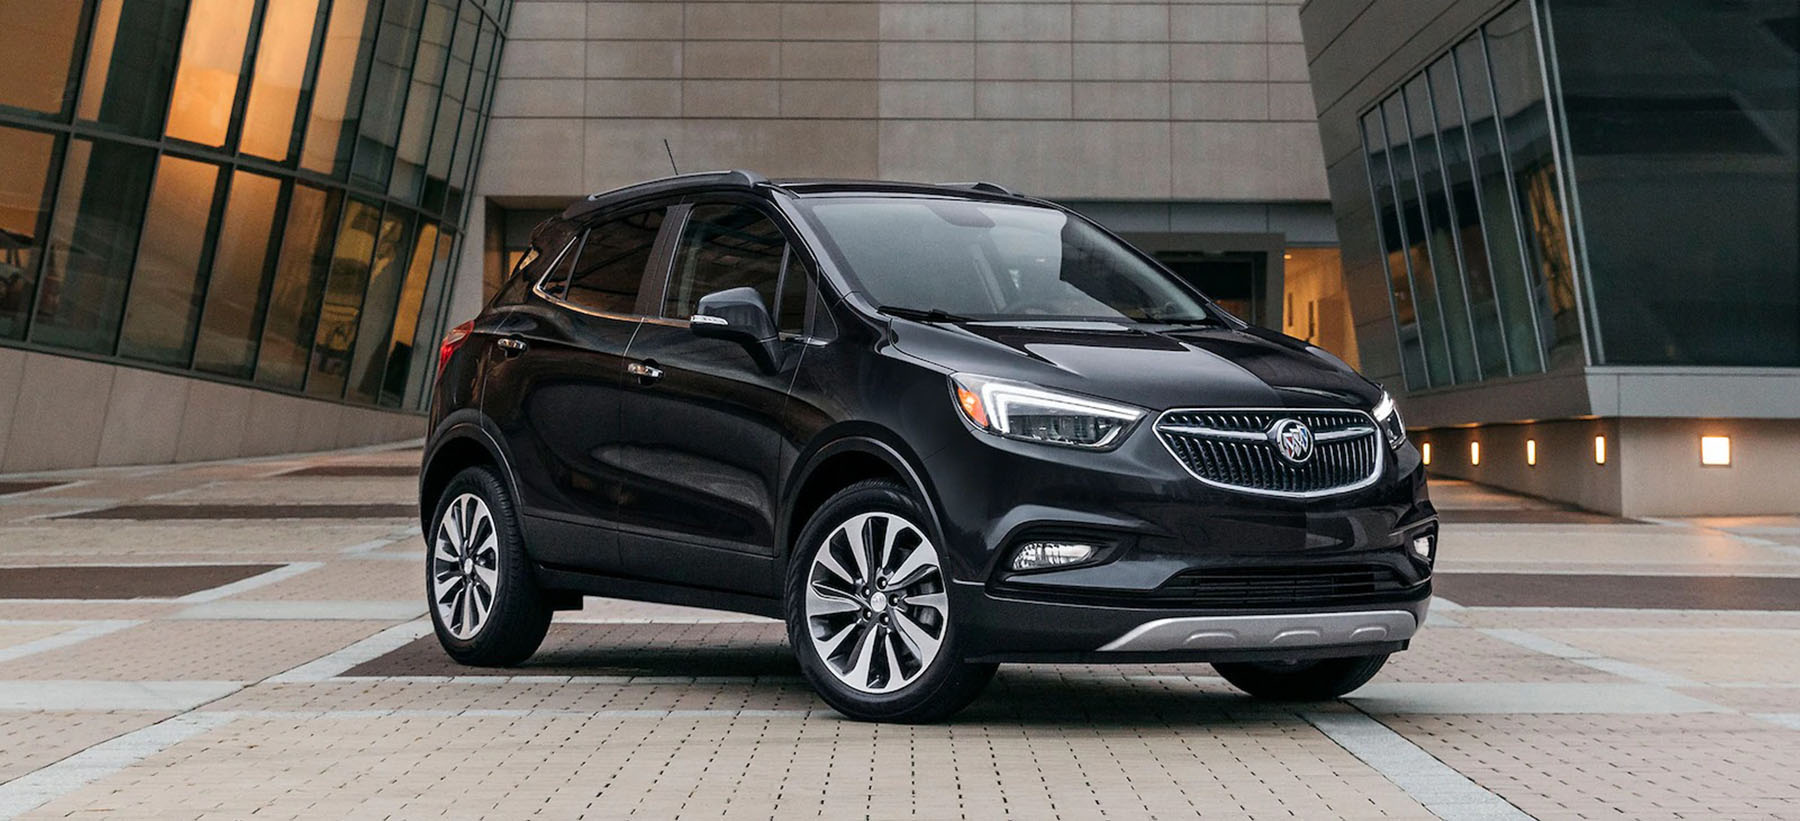 2020 Buick Encore Appearance Main Img